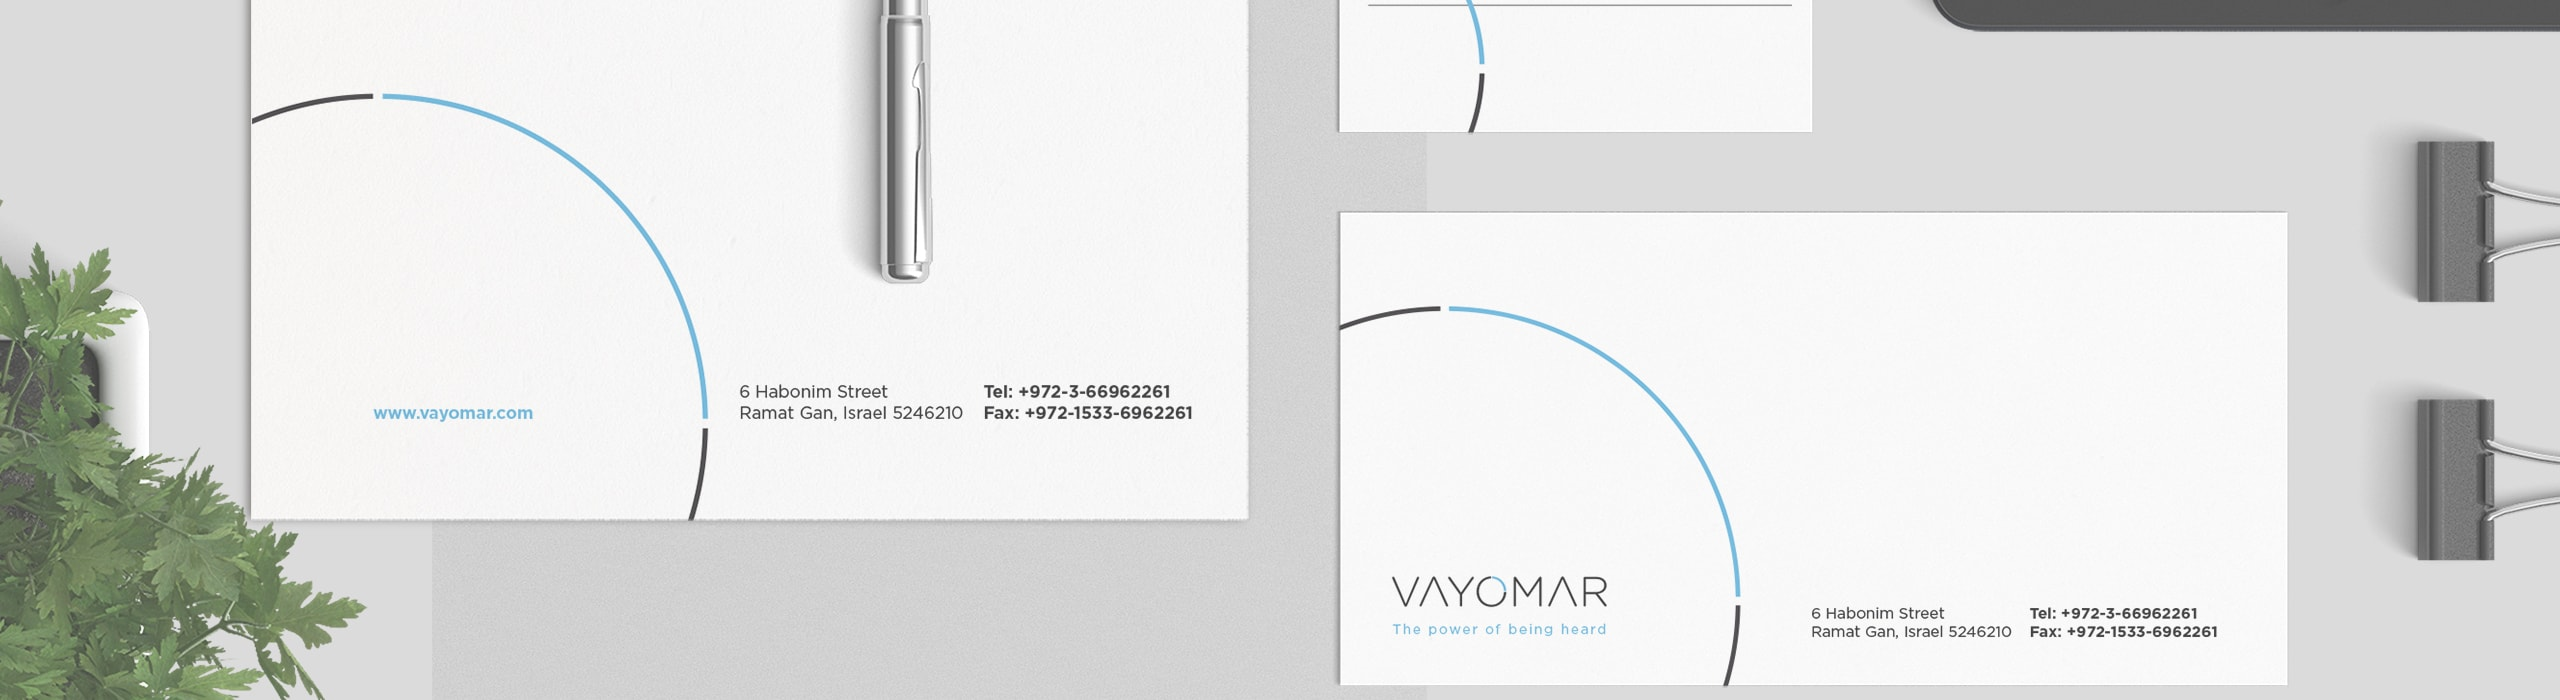 Vayomar - natie-vayomar-stationary - Natie Branding Agency